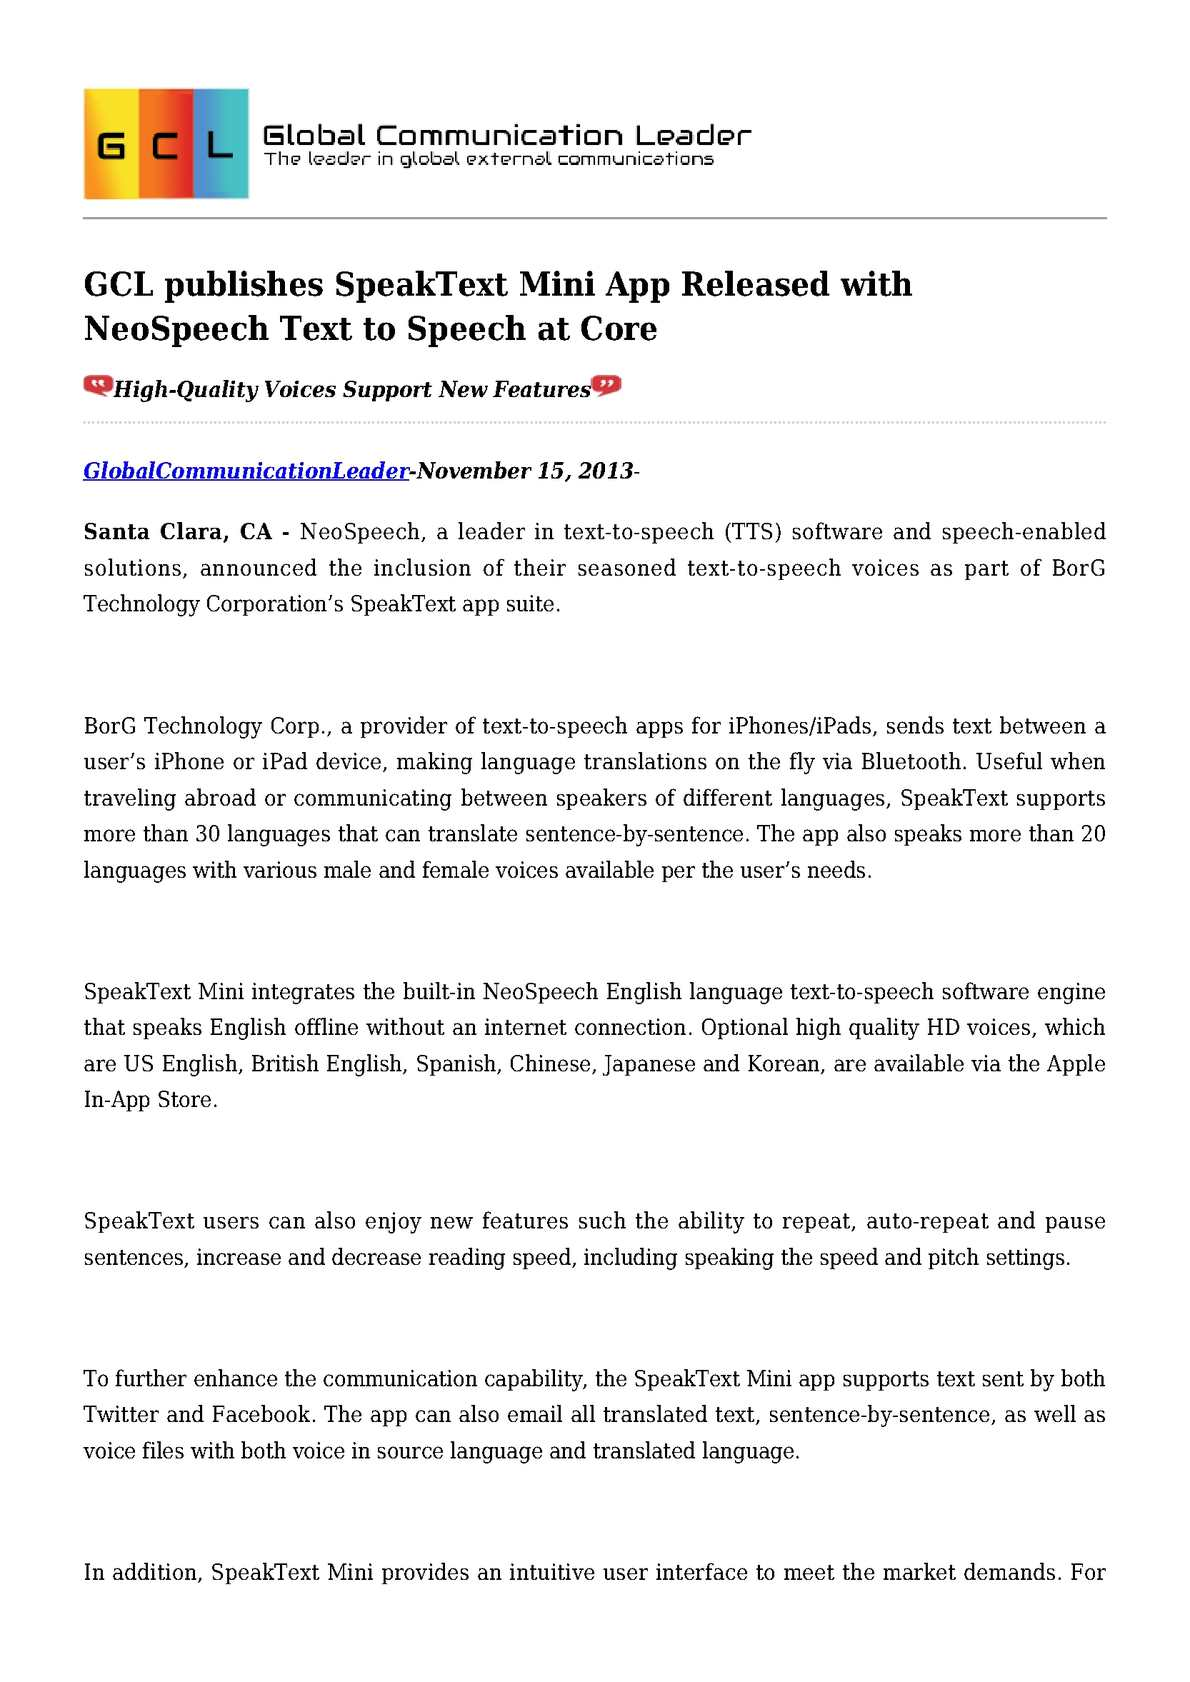 Calaméo - GCL publishes SpeakText Mini App Released with